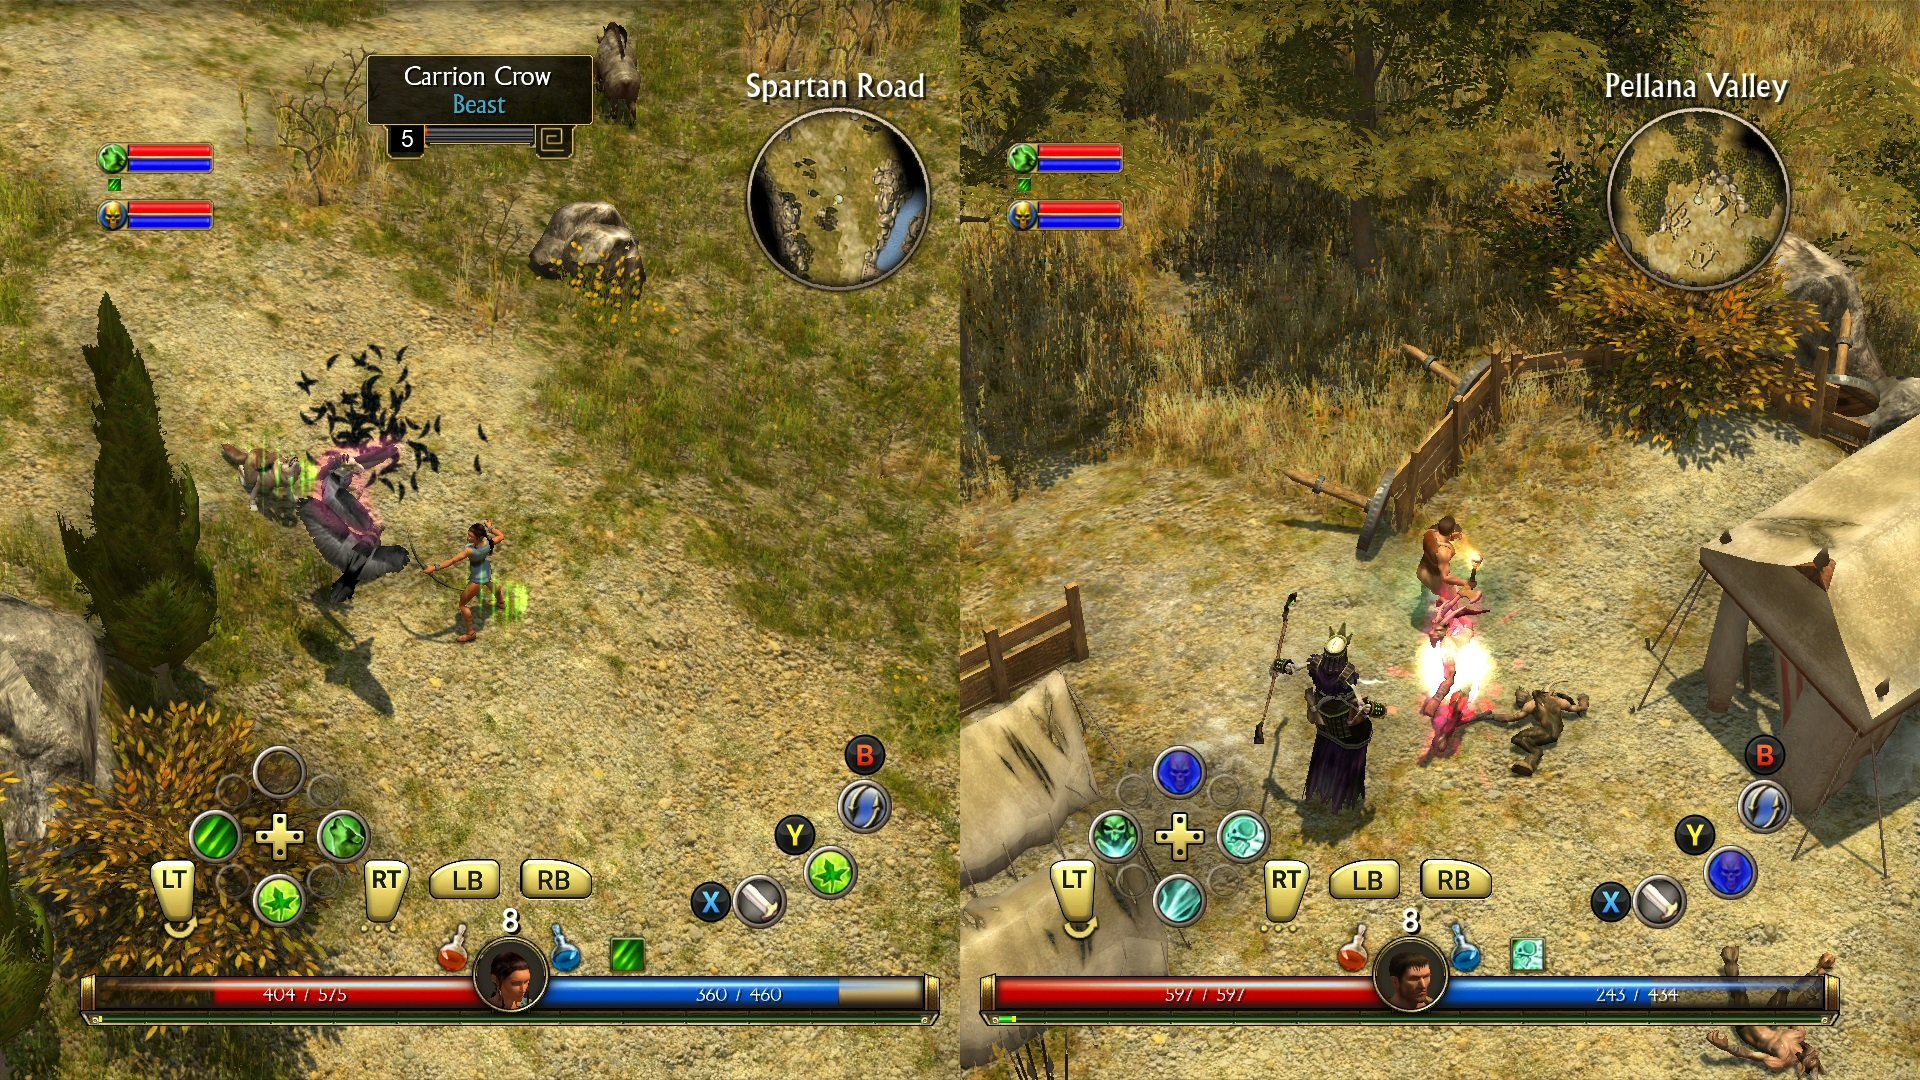 Couch Co-Op Now Available for Titan Quest